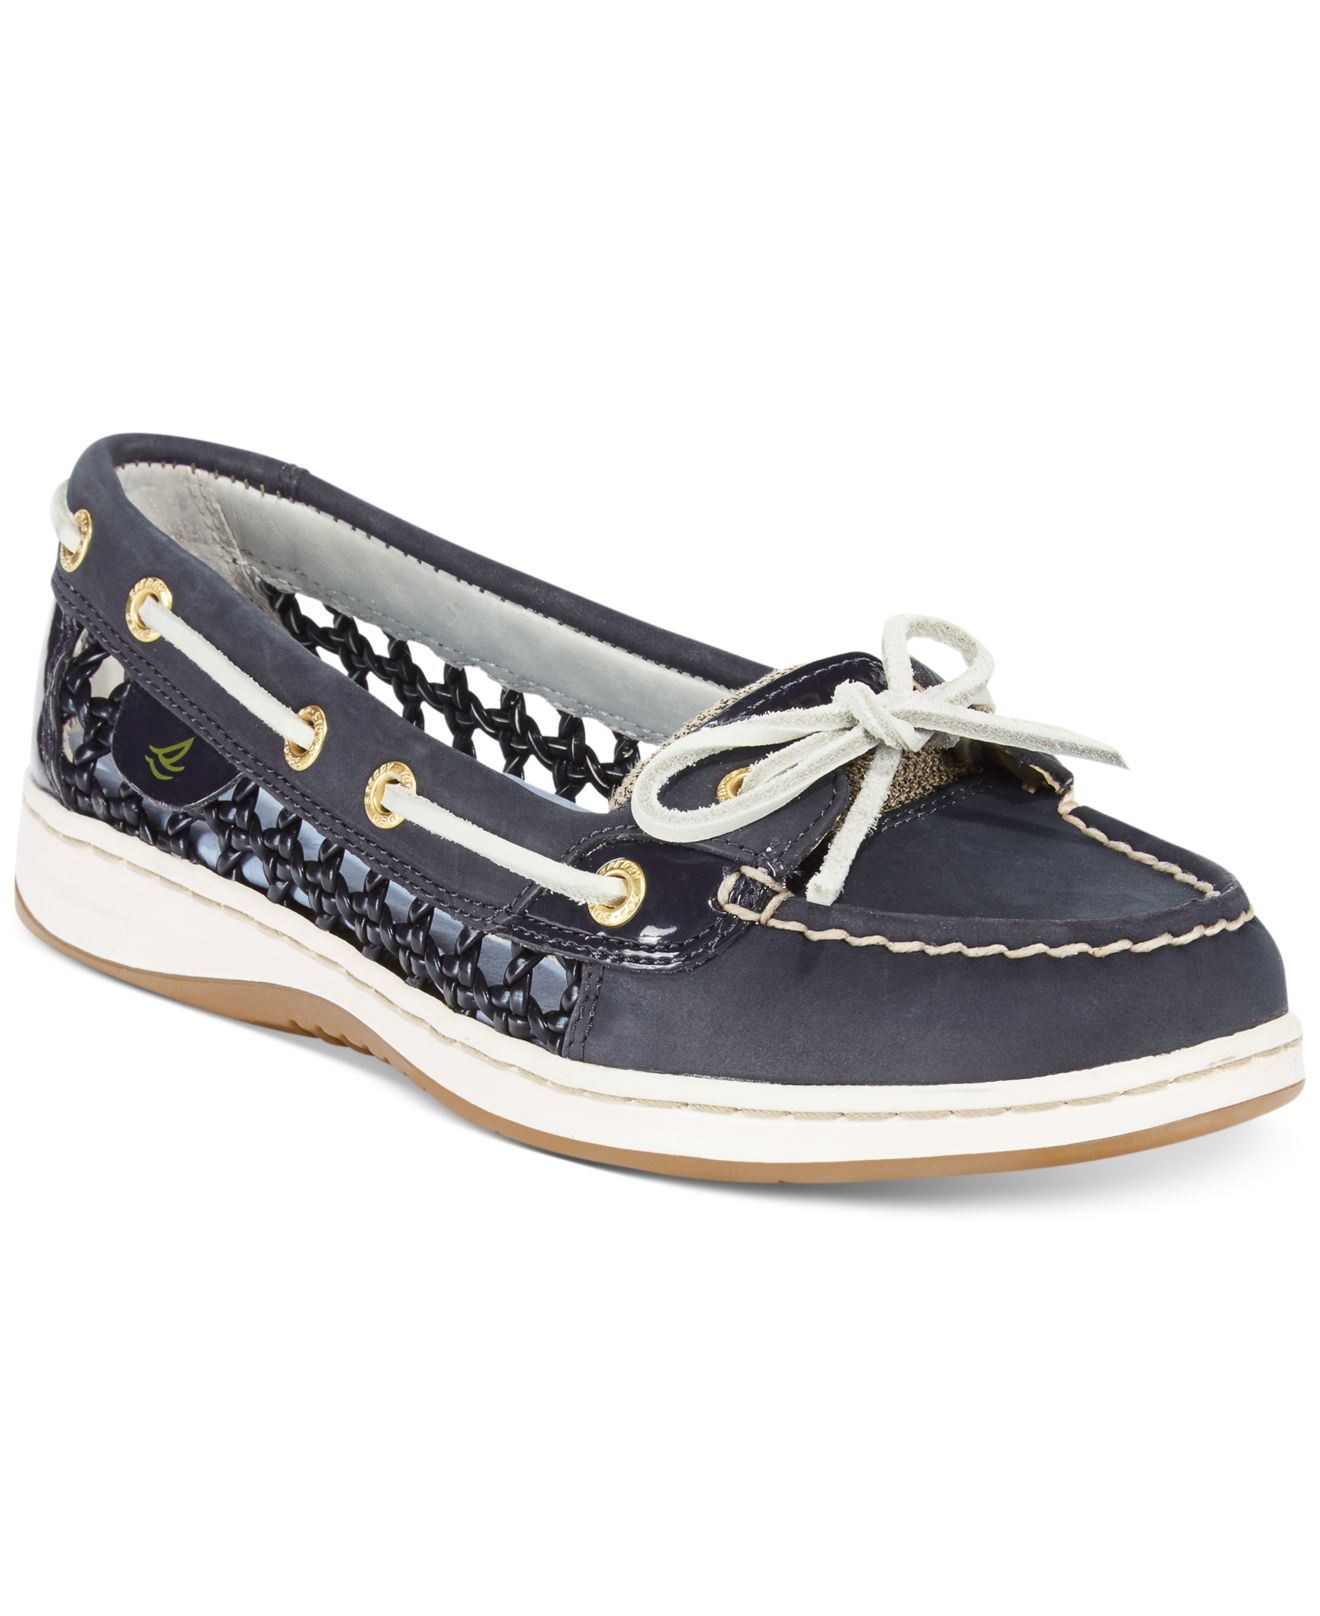 c22dc2580de Lyst - Sperry Top-Sider Women s Angelfish Cane Woven Boat Shoes in Blue